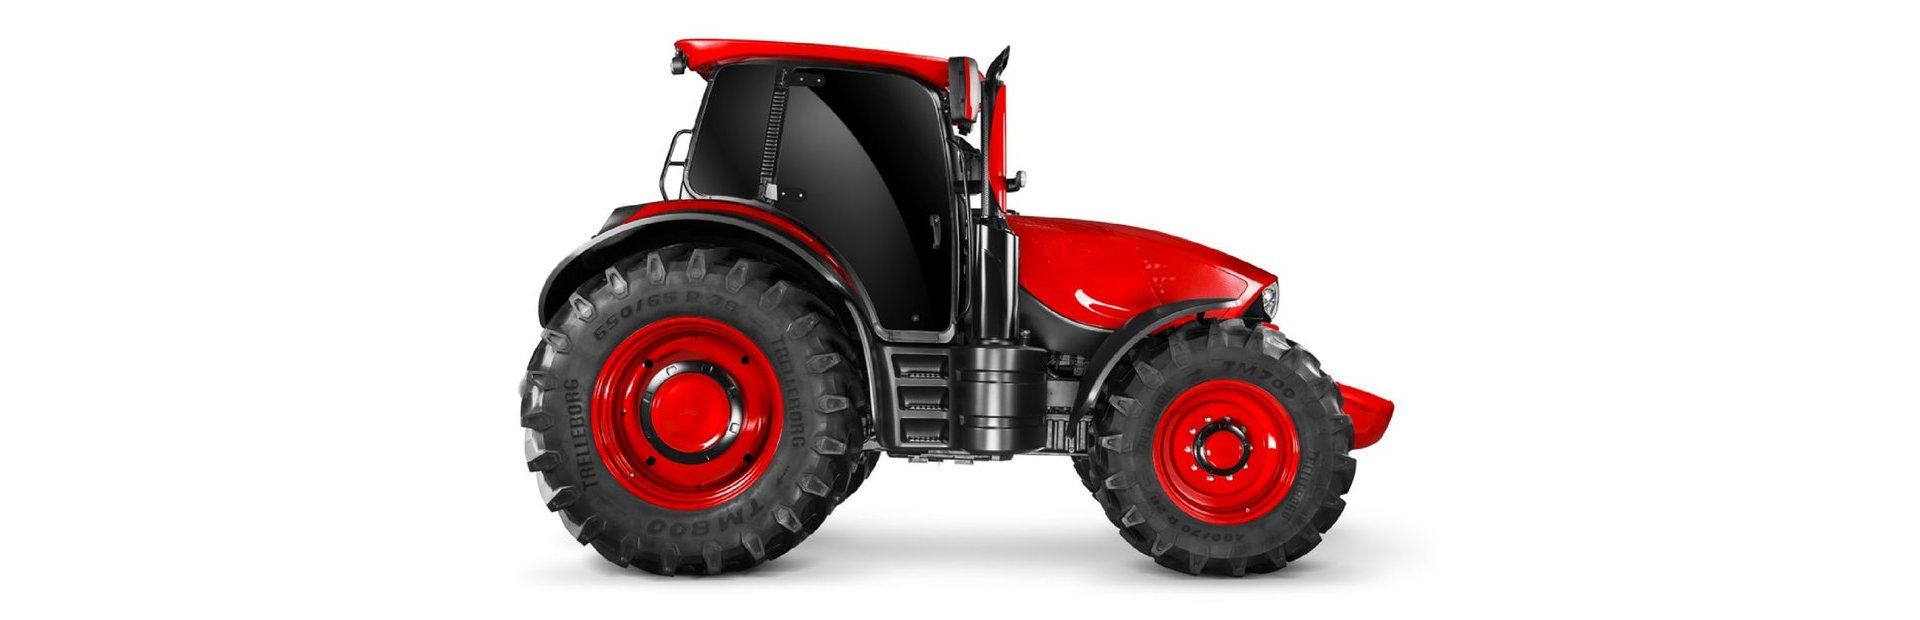 Service parts for tractors